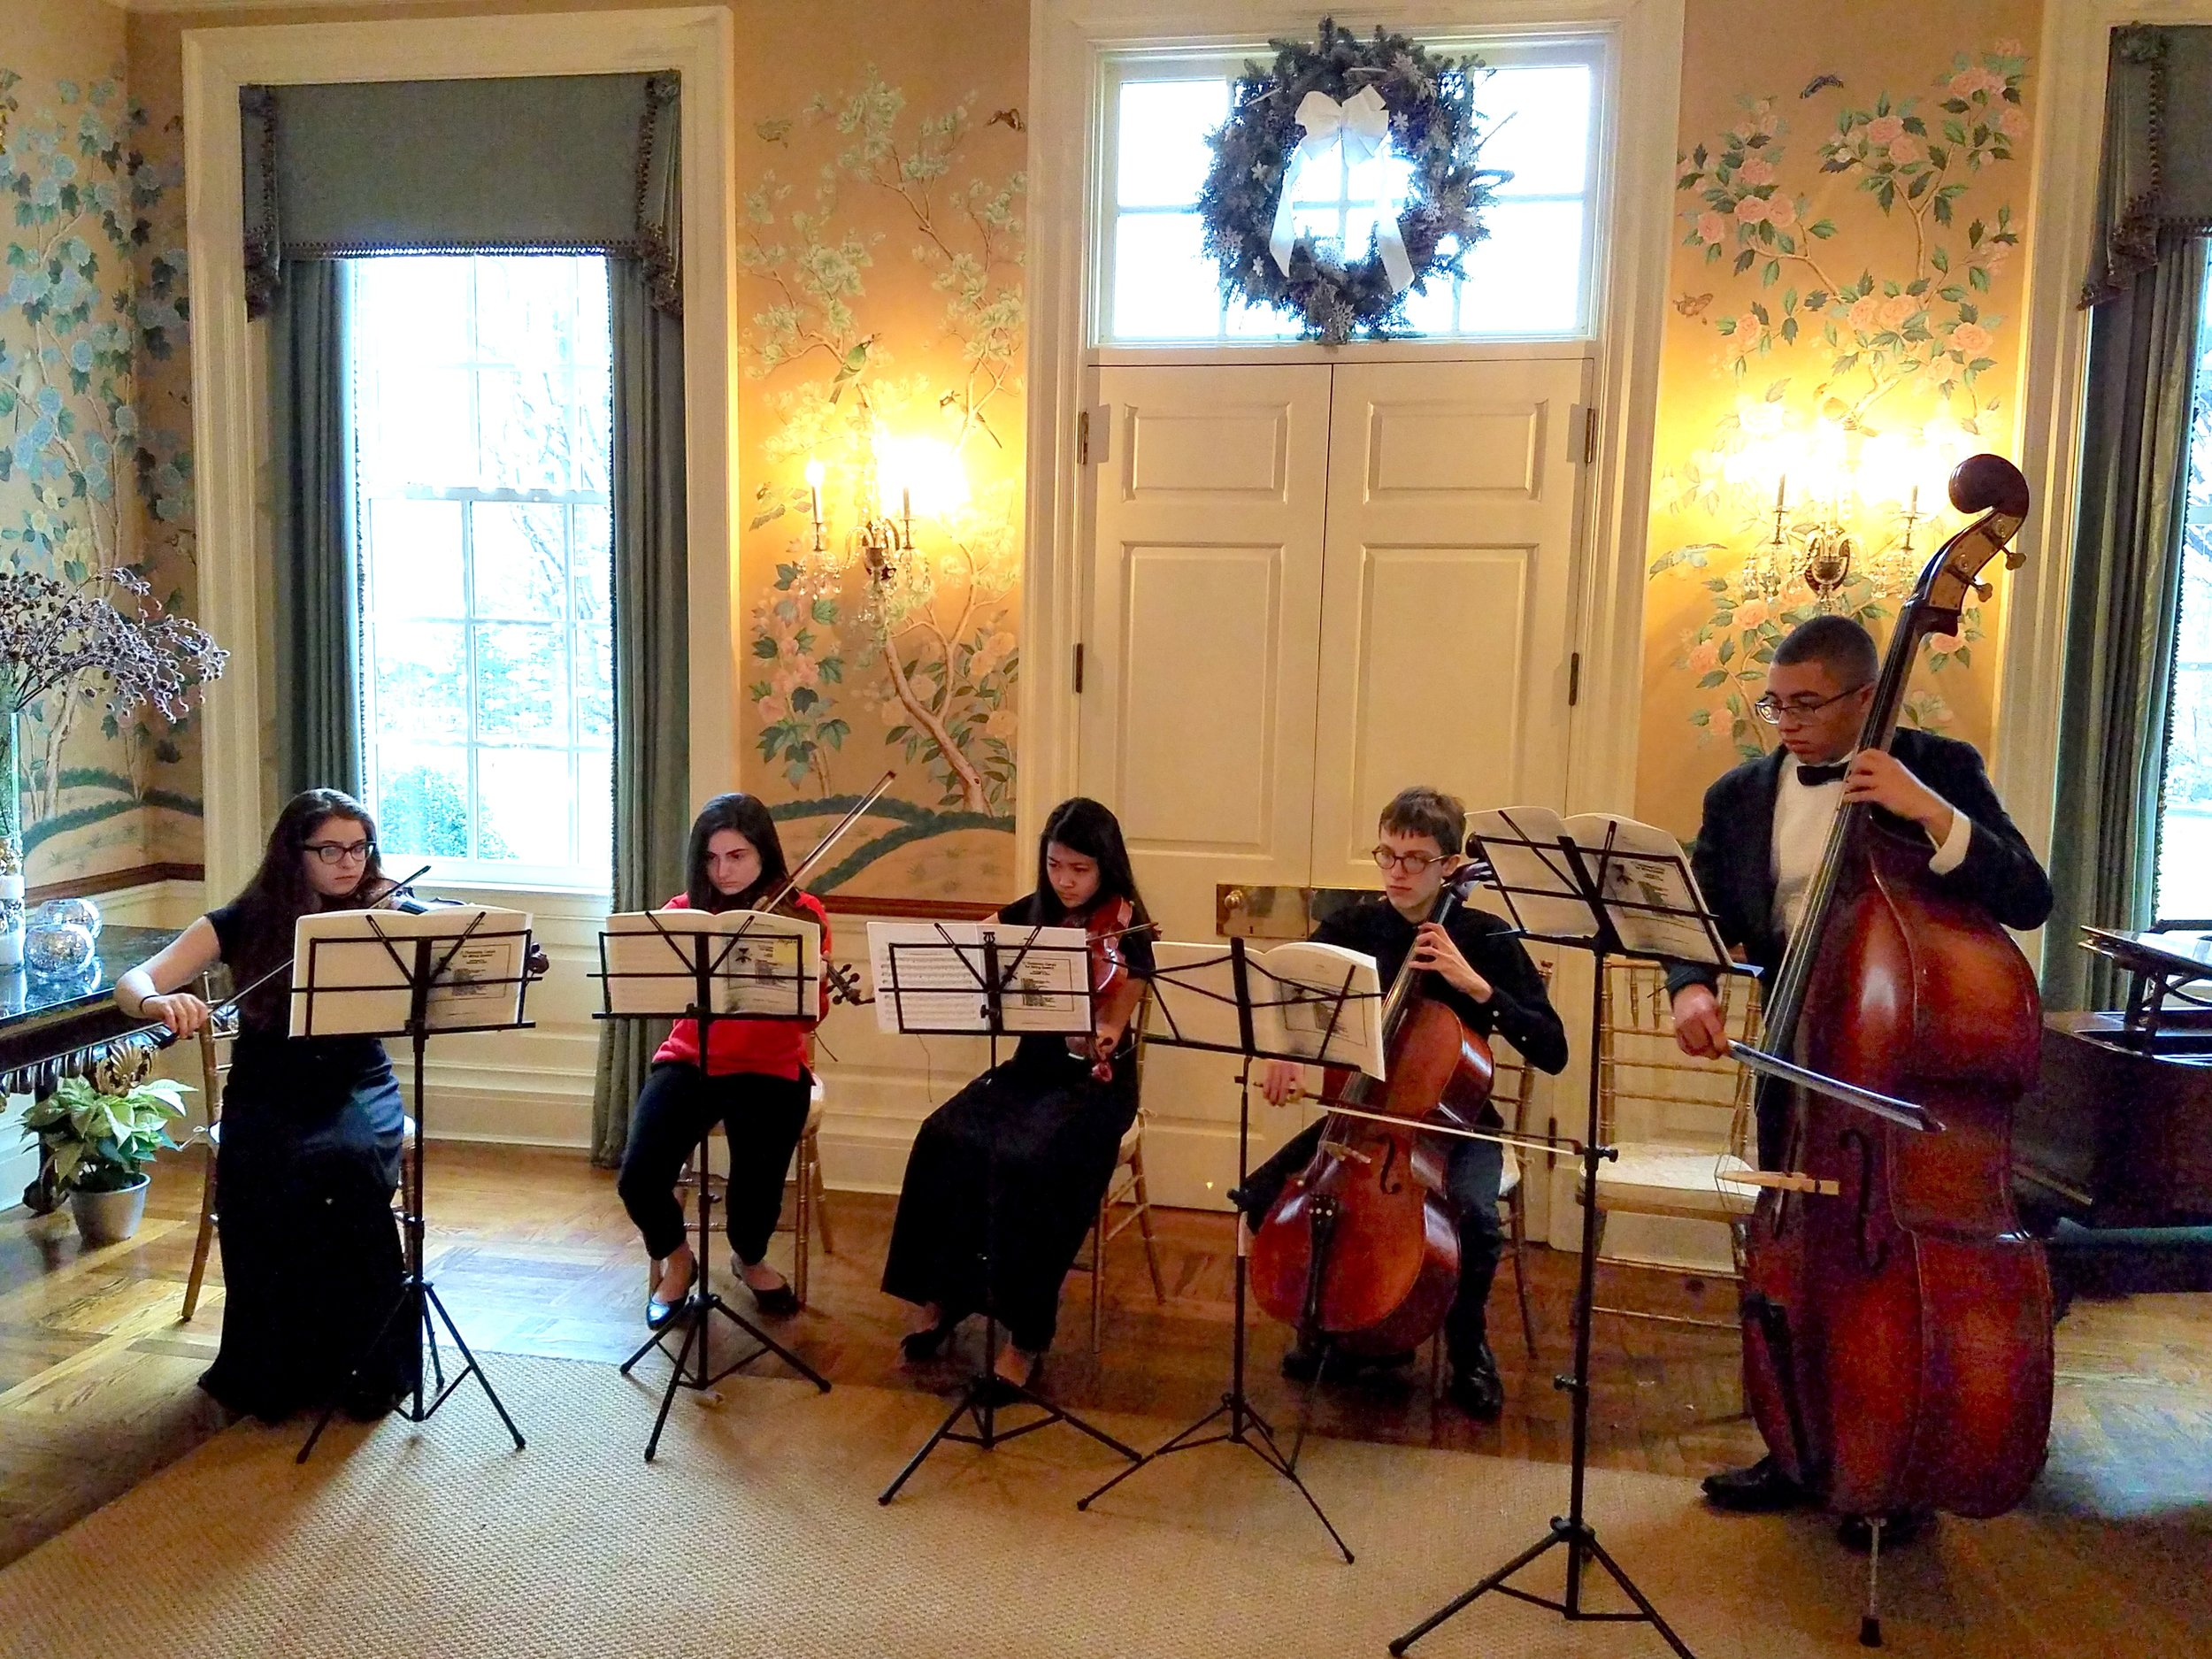 PA Governor's Holiday Open House - Sunday, December 9, 2018 - Orange Accents Quinter, Governor's Mansion, HarrisburgGovernor and Mrs. Tom Wolf invited the Orange Accents Quintet to perform at their annual Holiday Open House. It was a wonderful road trip for this YC² group—Riley, Angelina, Vanessa, Nick, and Kobe—who performed a set of holiday favorites arranged for them by their fabulous coach Stephanie Tretick, a member of the Pittsburgh Symphony Orchestra.